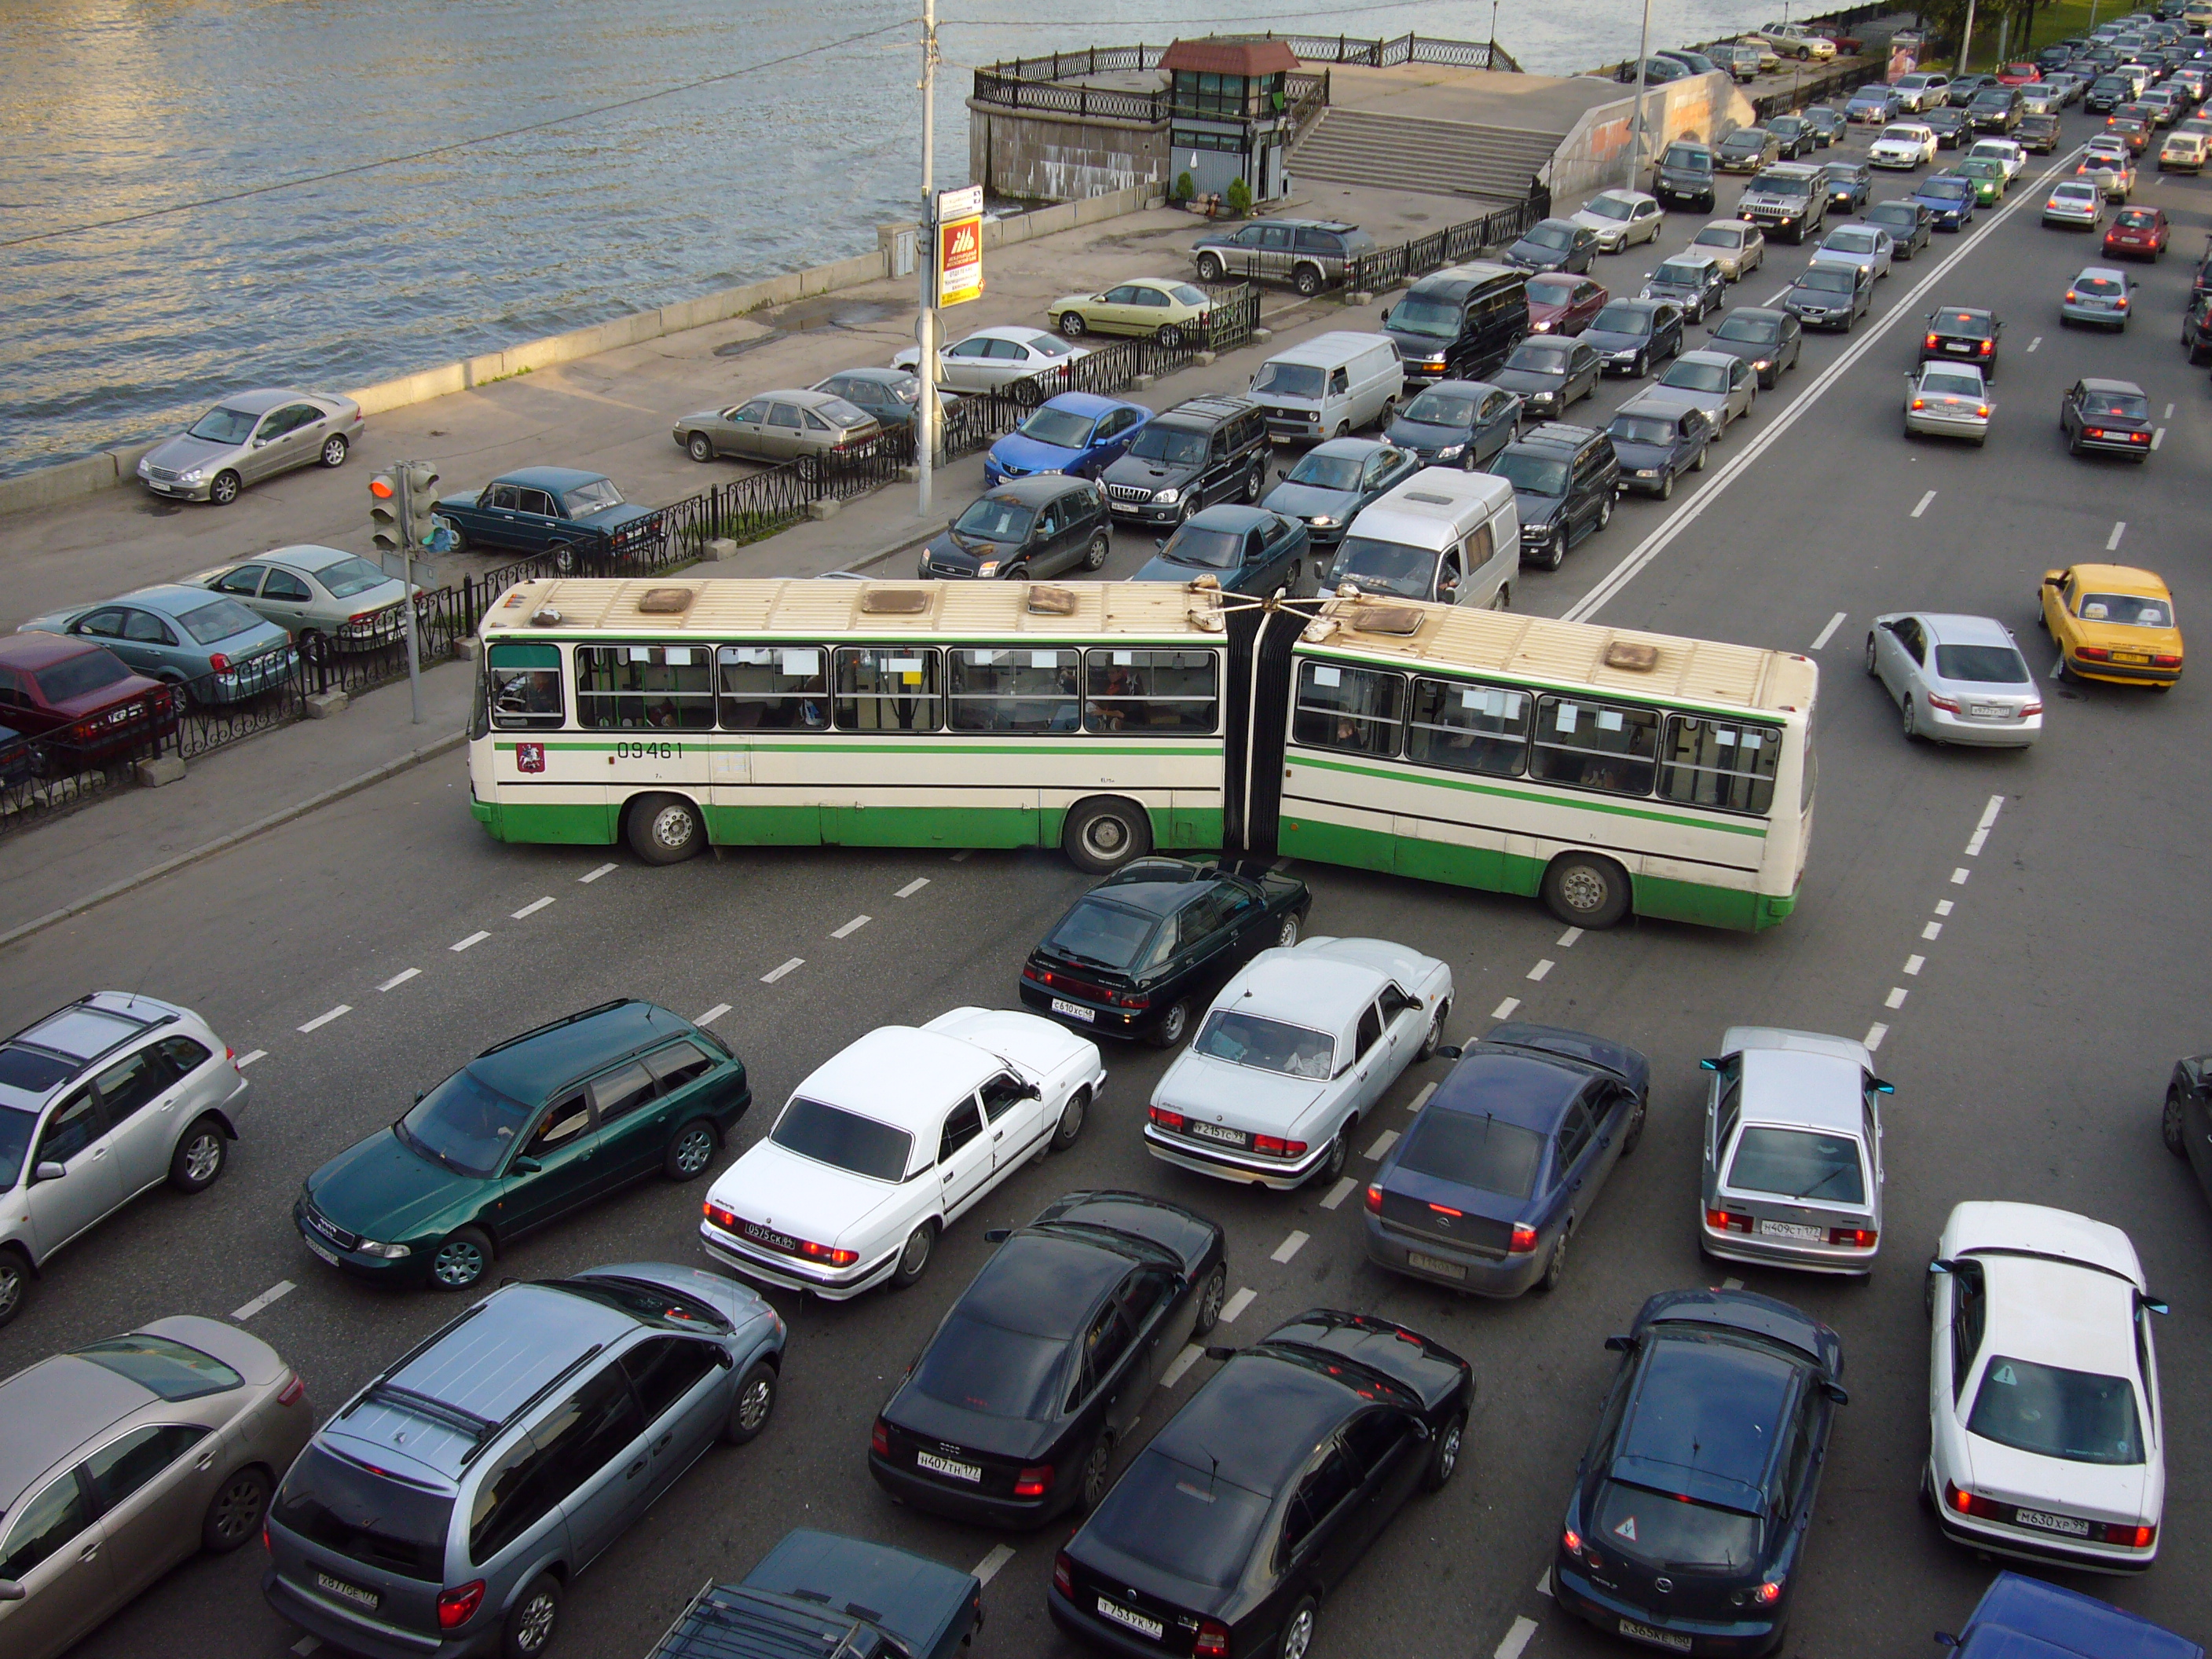 002 Essay Example Moscow Traffic Congestion Jpg On Road Accident Imposing Wikipedia Full